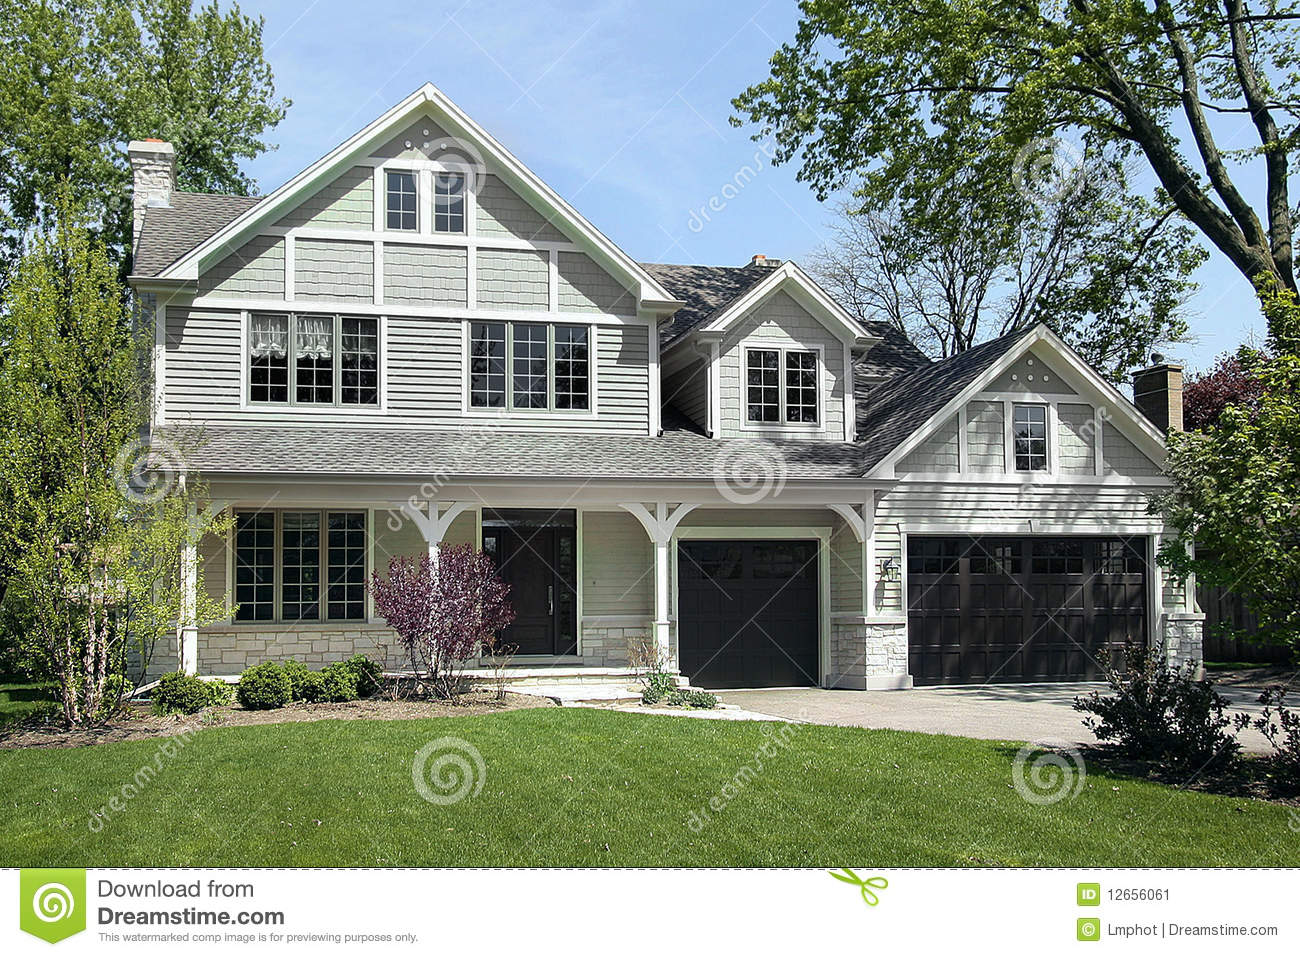 New construction home in spring